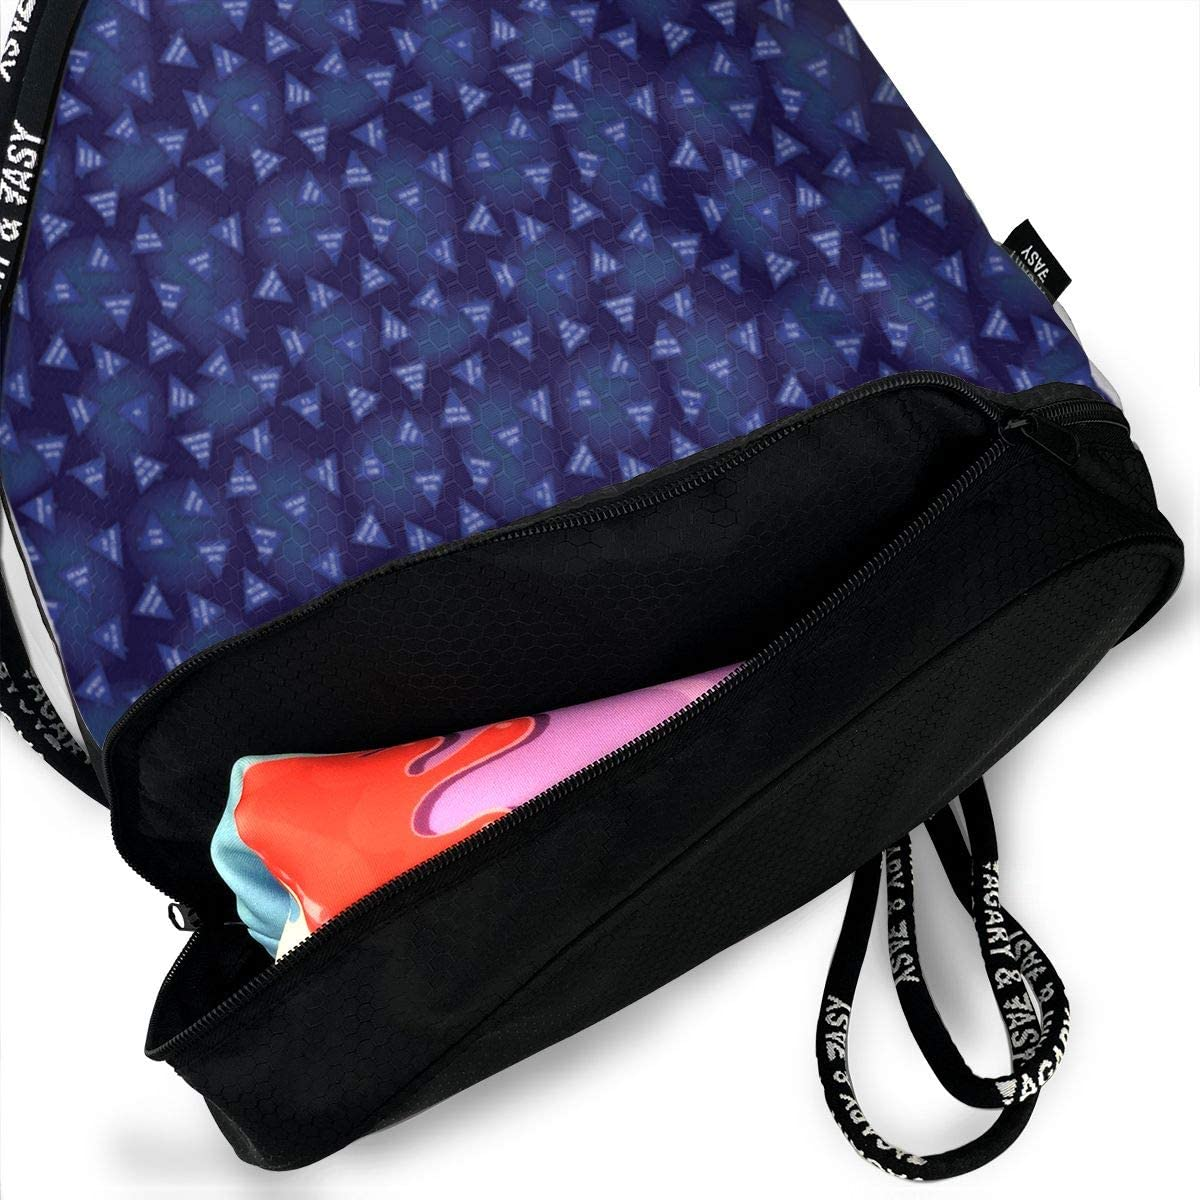 Magic 8 Ball Drawstring Backpack Sports Athletic Gym Cinch Sack String Storage Bags for Hiking Travel Beach